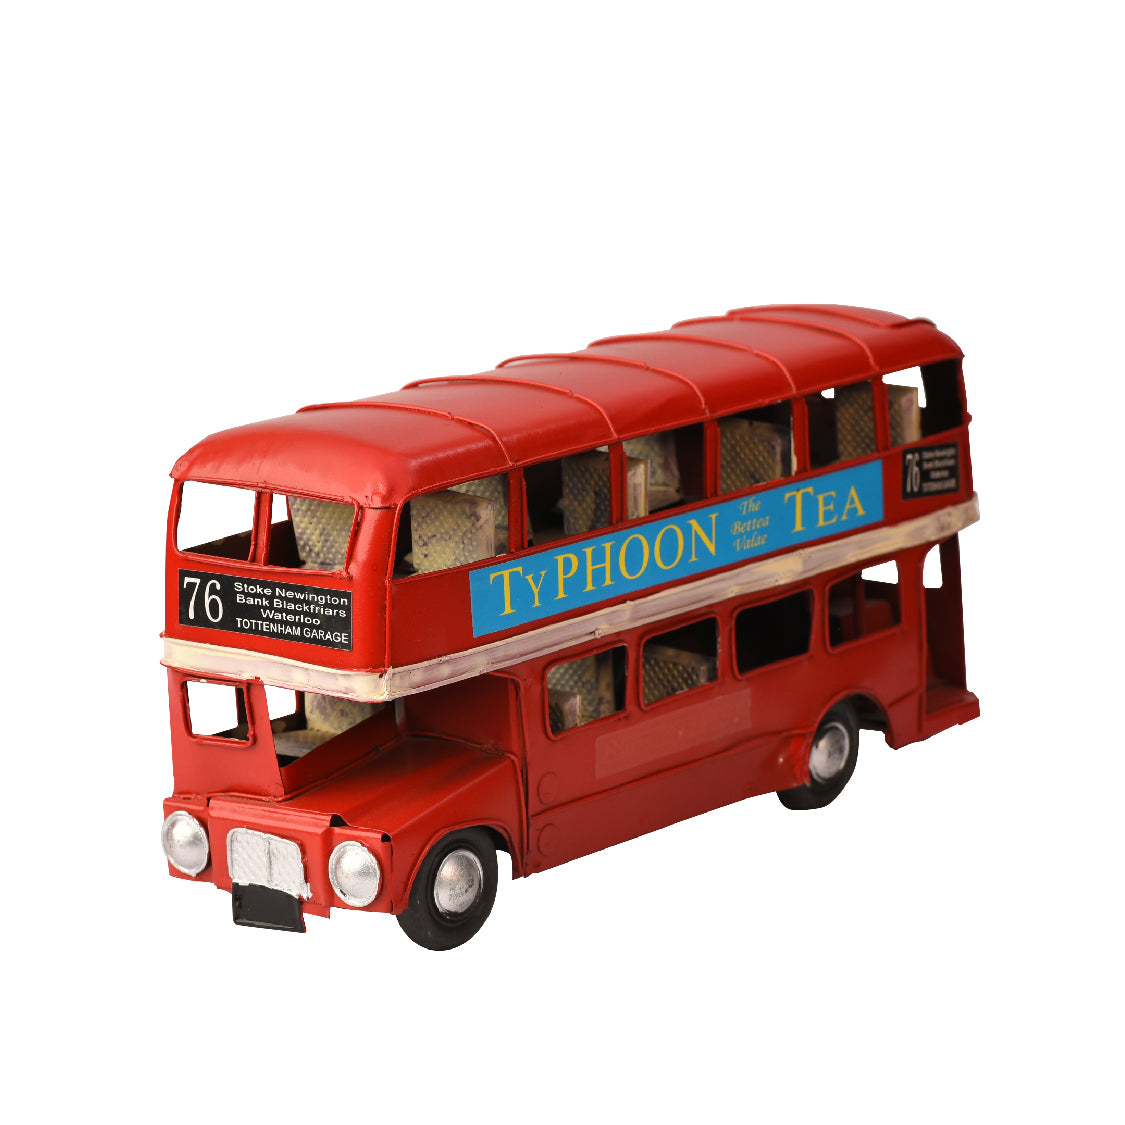 Retro Double-Decker Bus Ornament